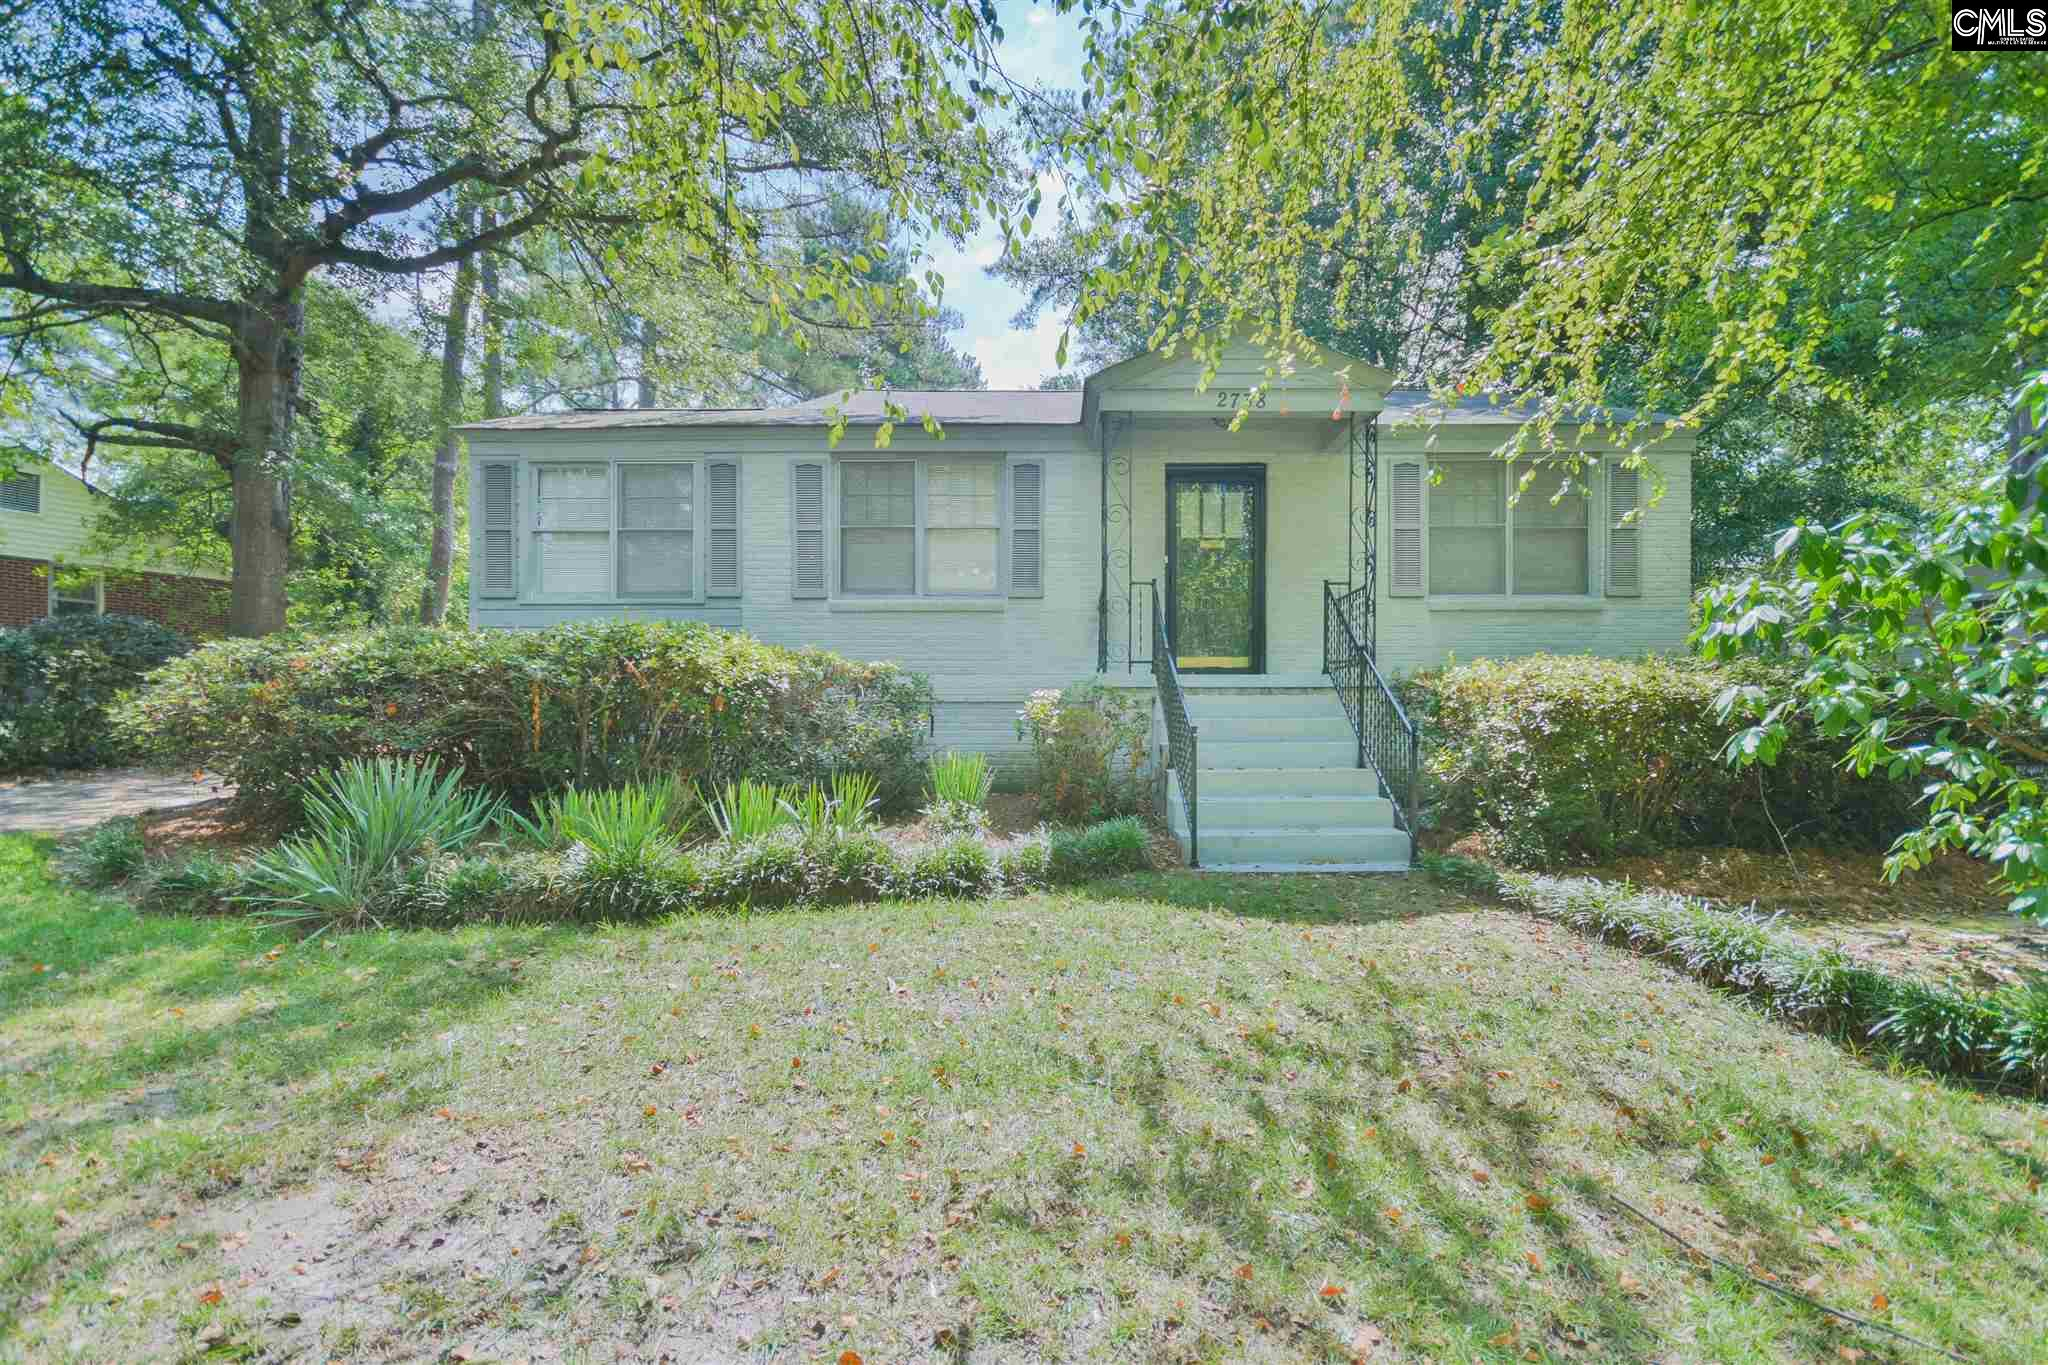 2738 Glenwood Columbia, SC 29204